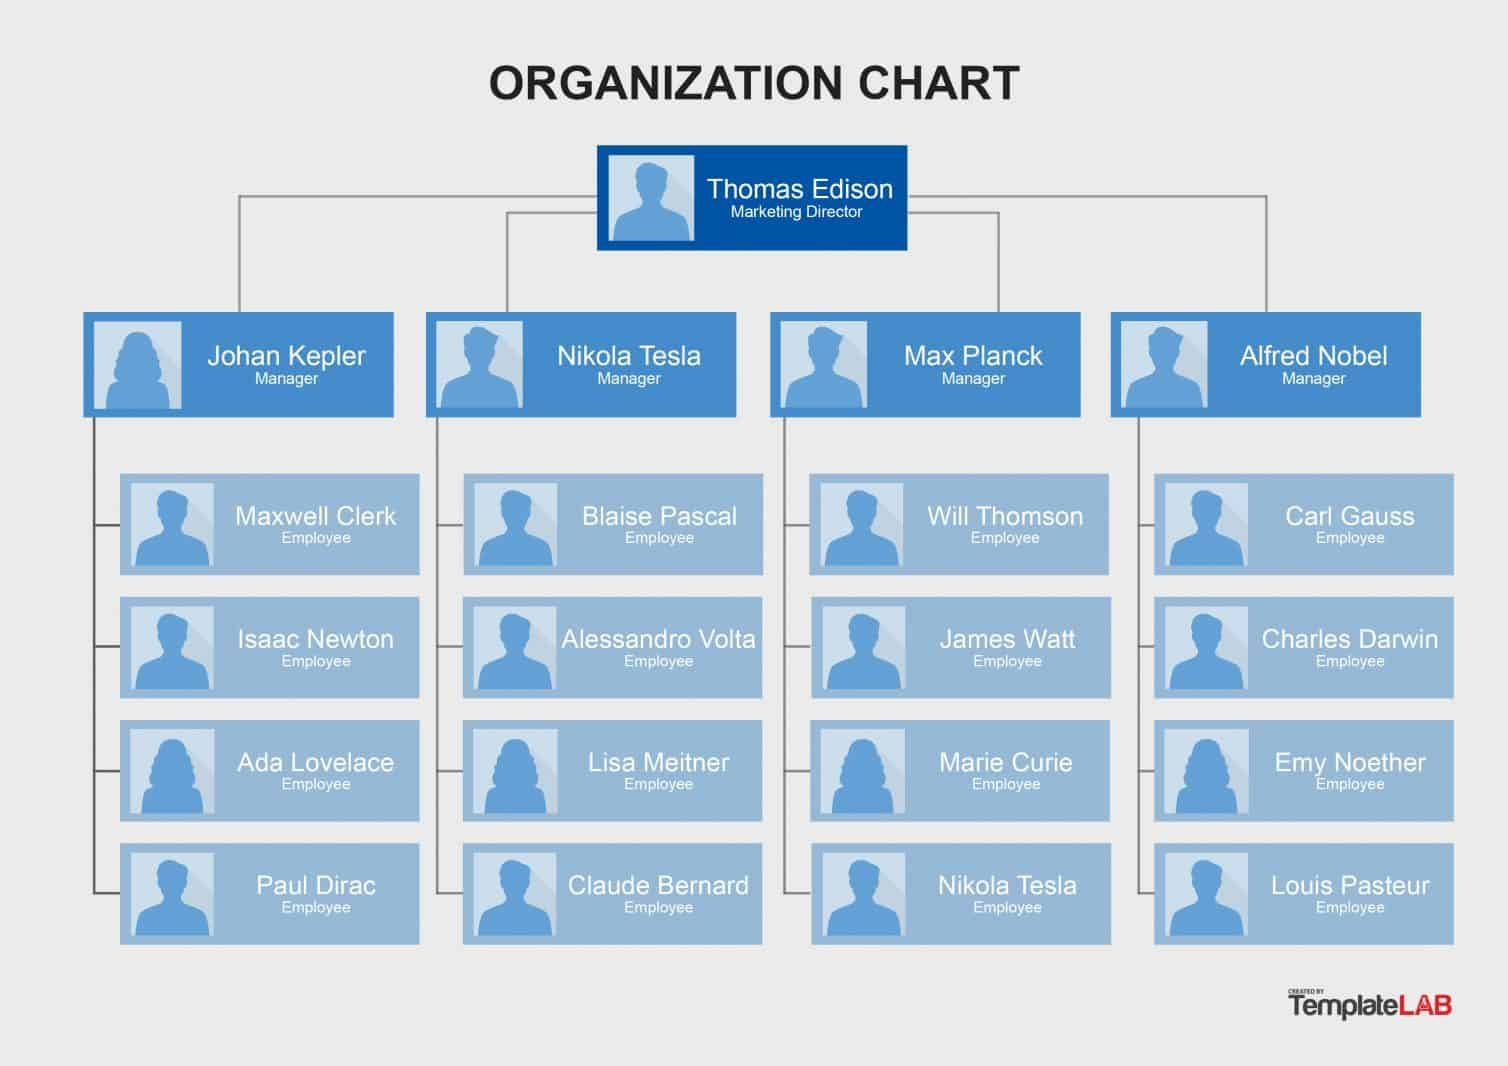 008 Awesome M Word Org Chart Template Concept  Organizational Free DownloadFull